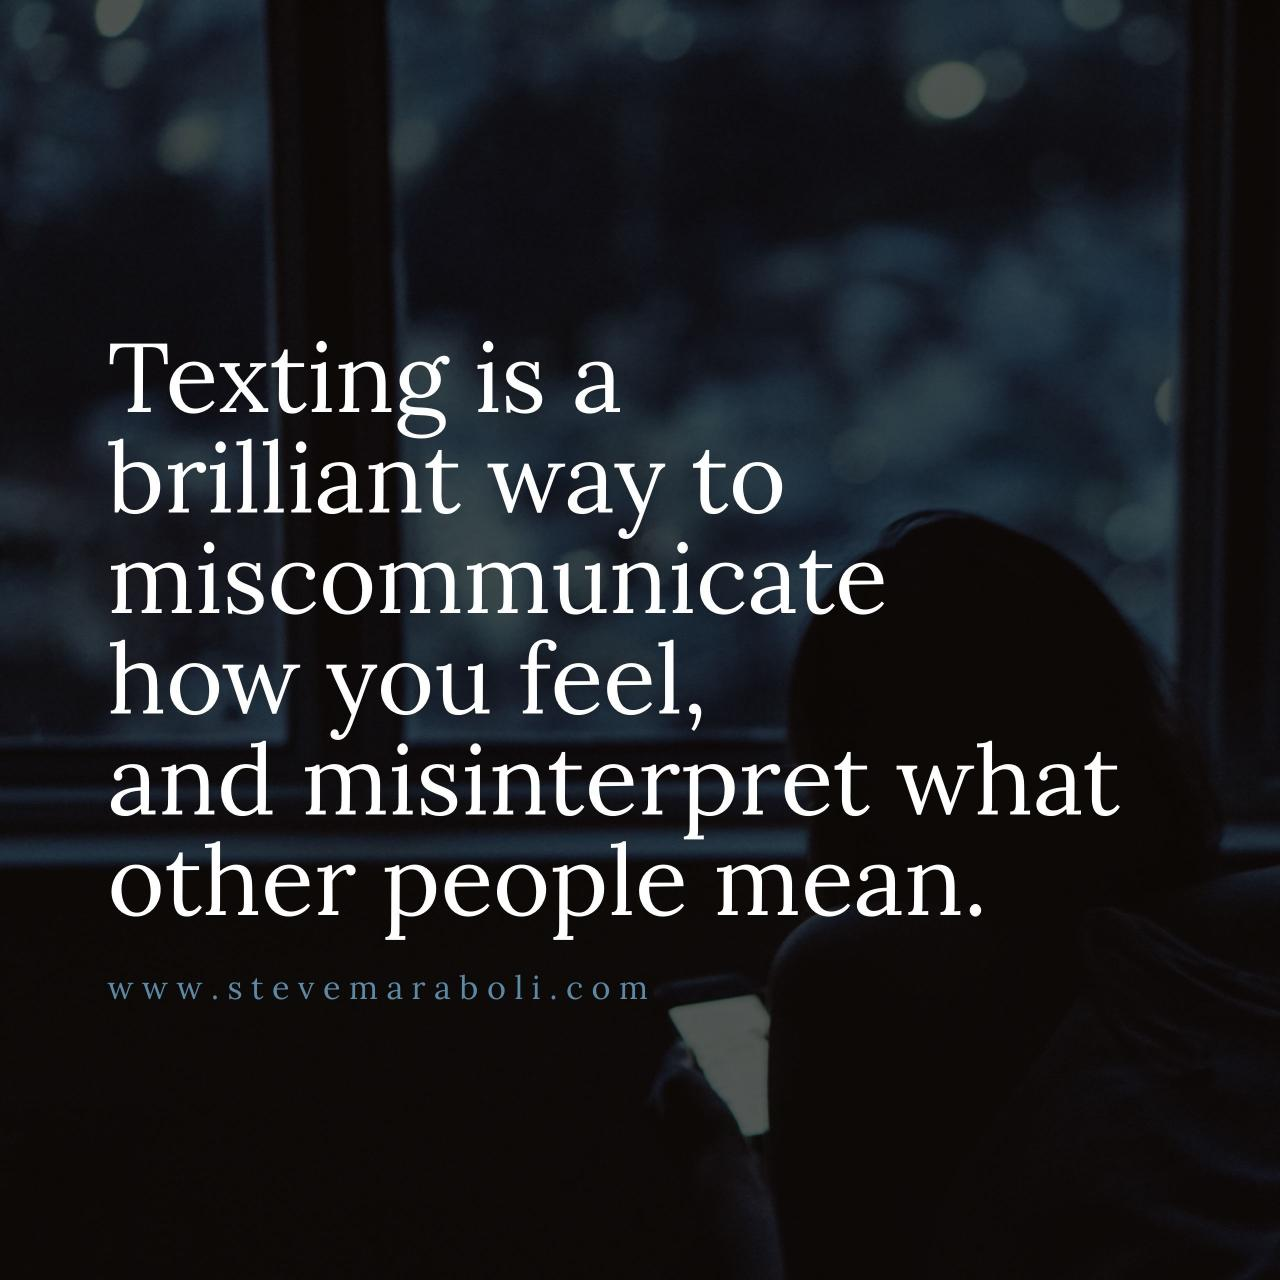 Texting Is A Brilliant Way To Miscommunicate How You Feel And Misinterpret What Other People Mean